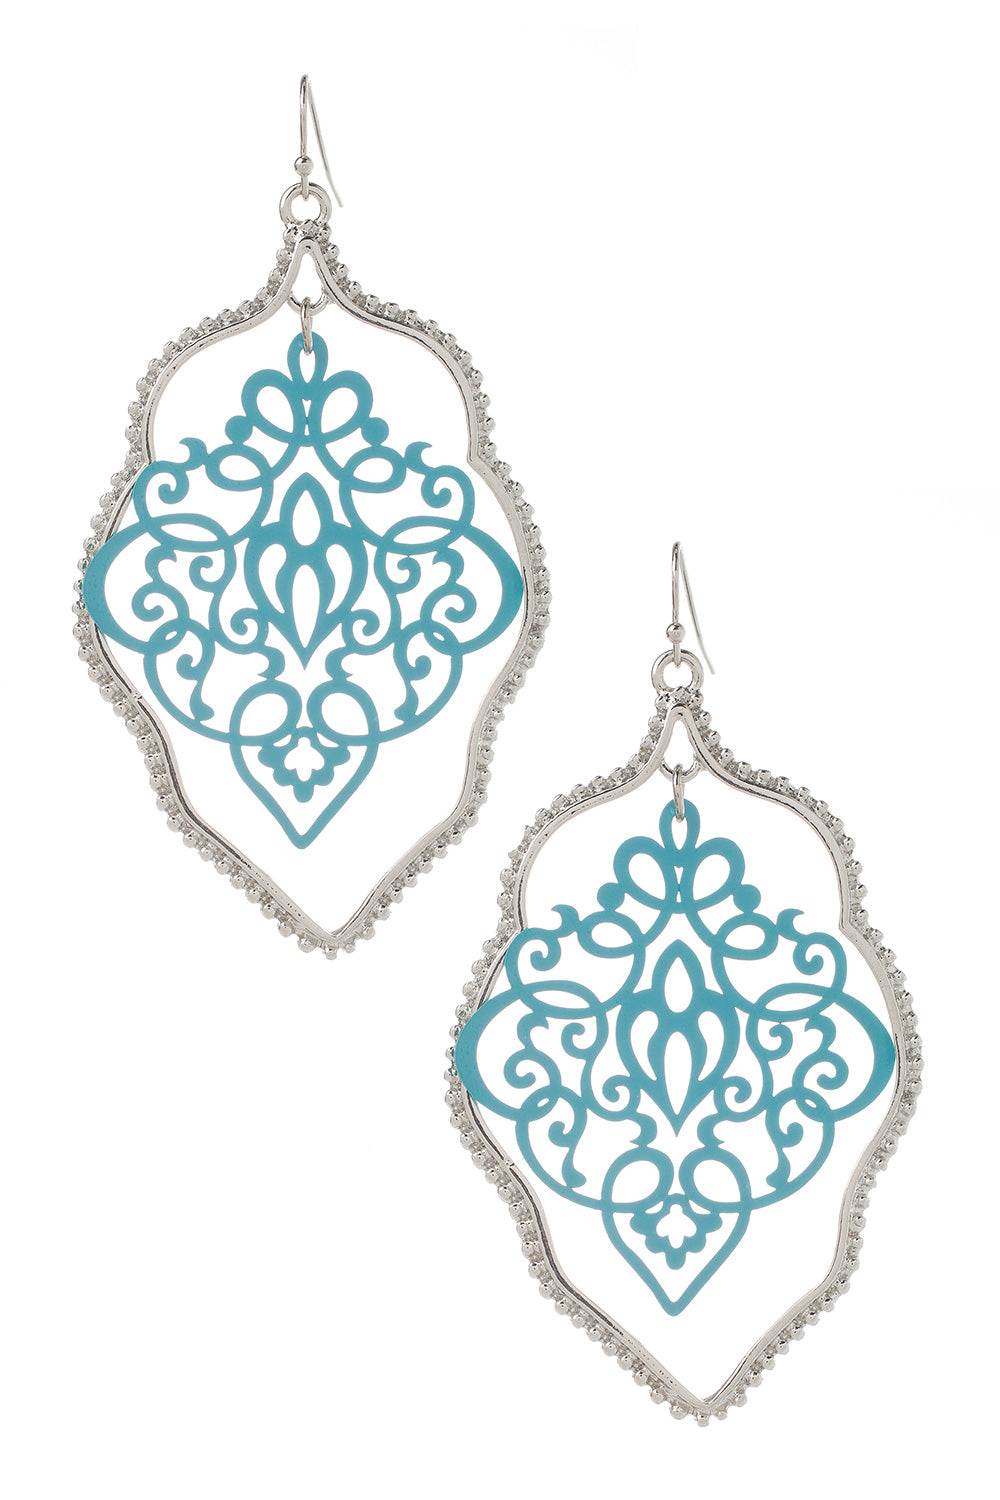 Type 2 Doily Frame Earrings